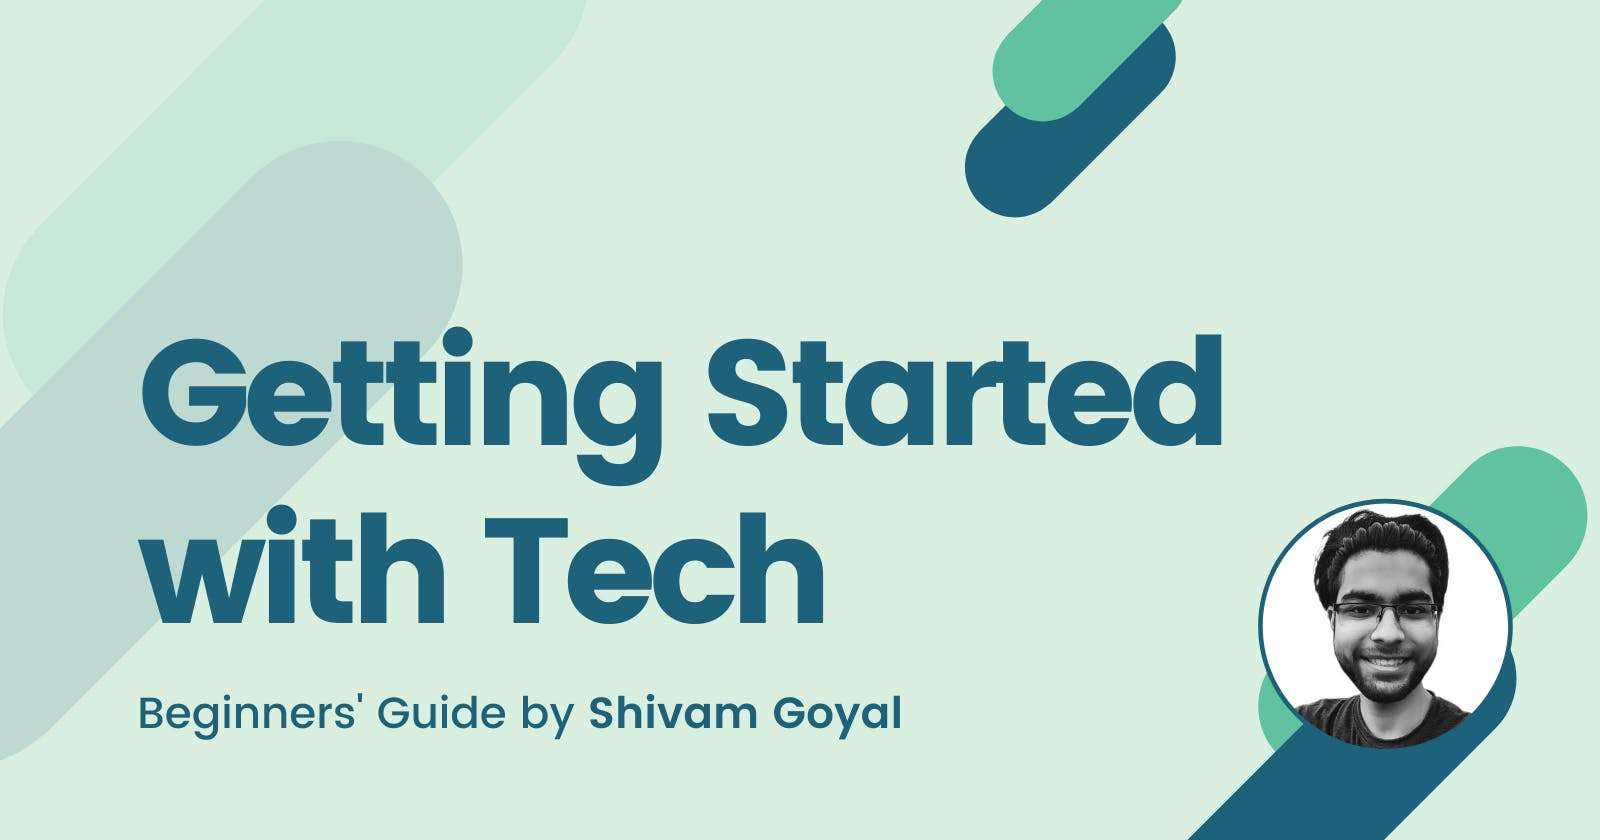 Getting Started with Tech for Beginners